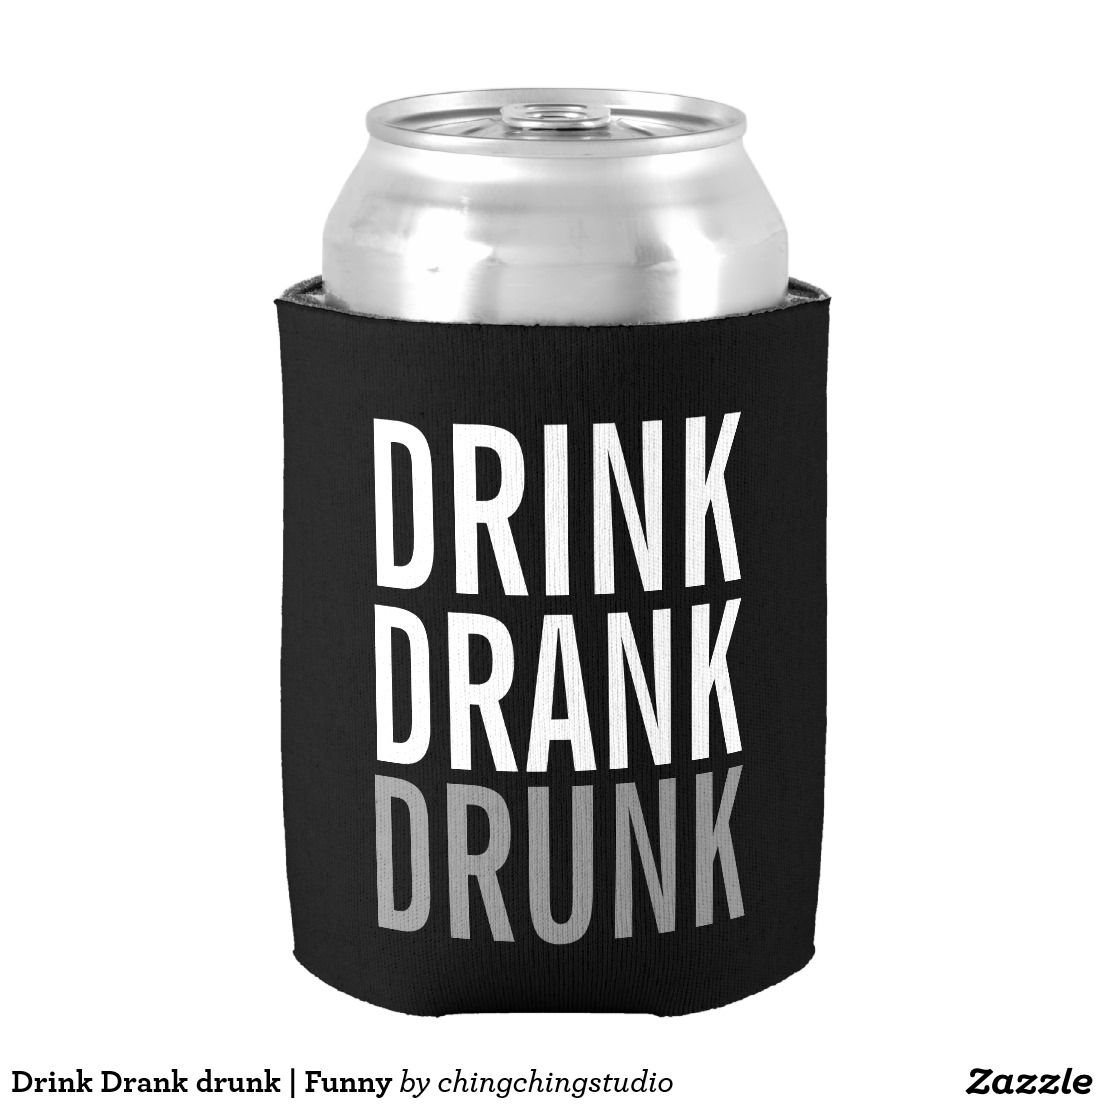 'Drink Drank Drunk' Black and White Funny Can Cooler for party night.